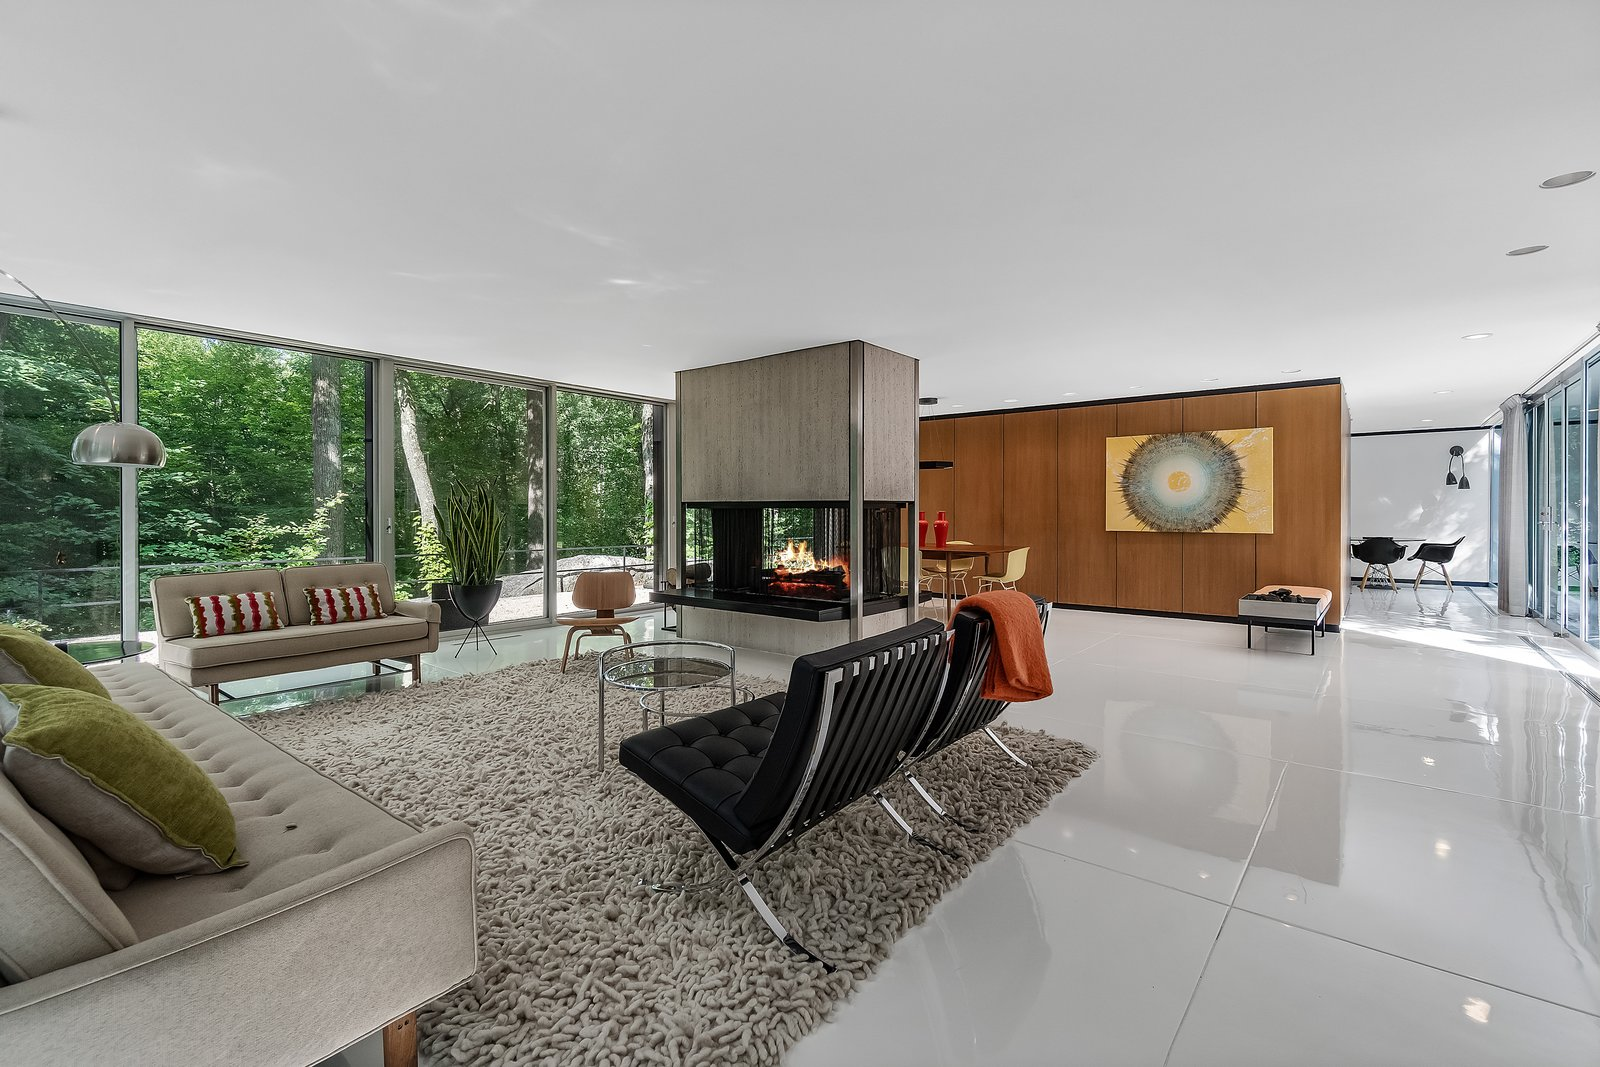 Living, Concrete, Coffee Tables, End Tables, Lamps, Chair, Two-Sided, Recessed, and Sofa In the main living areas, the concrete slab floor was scored and given a coat of white resin.  Best Living Lamps Two-Sided Photos from A Mint Midcentury in New York Asks $2.2M